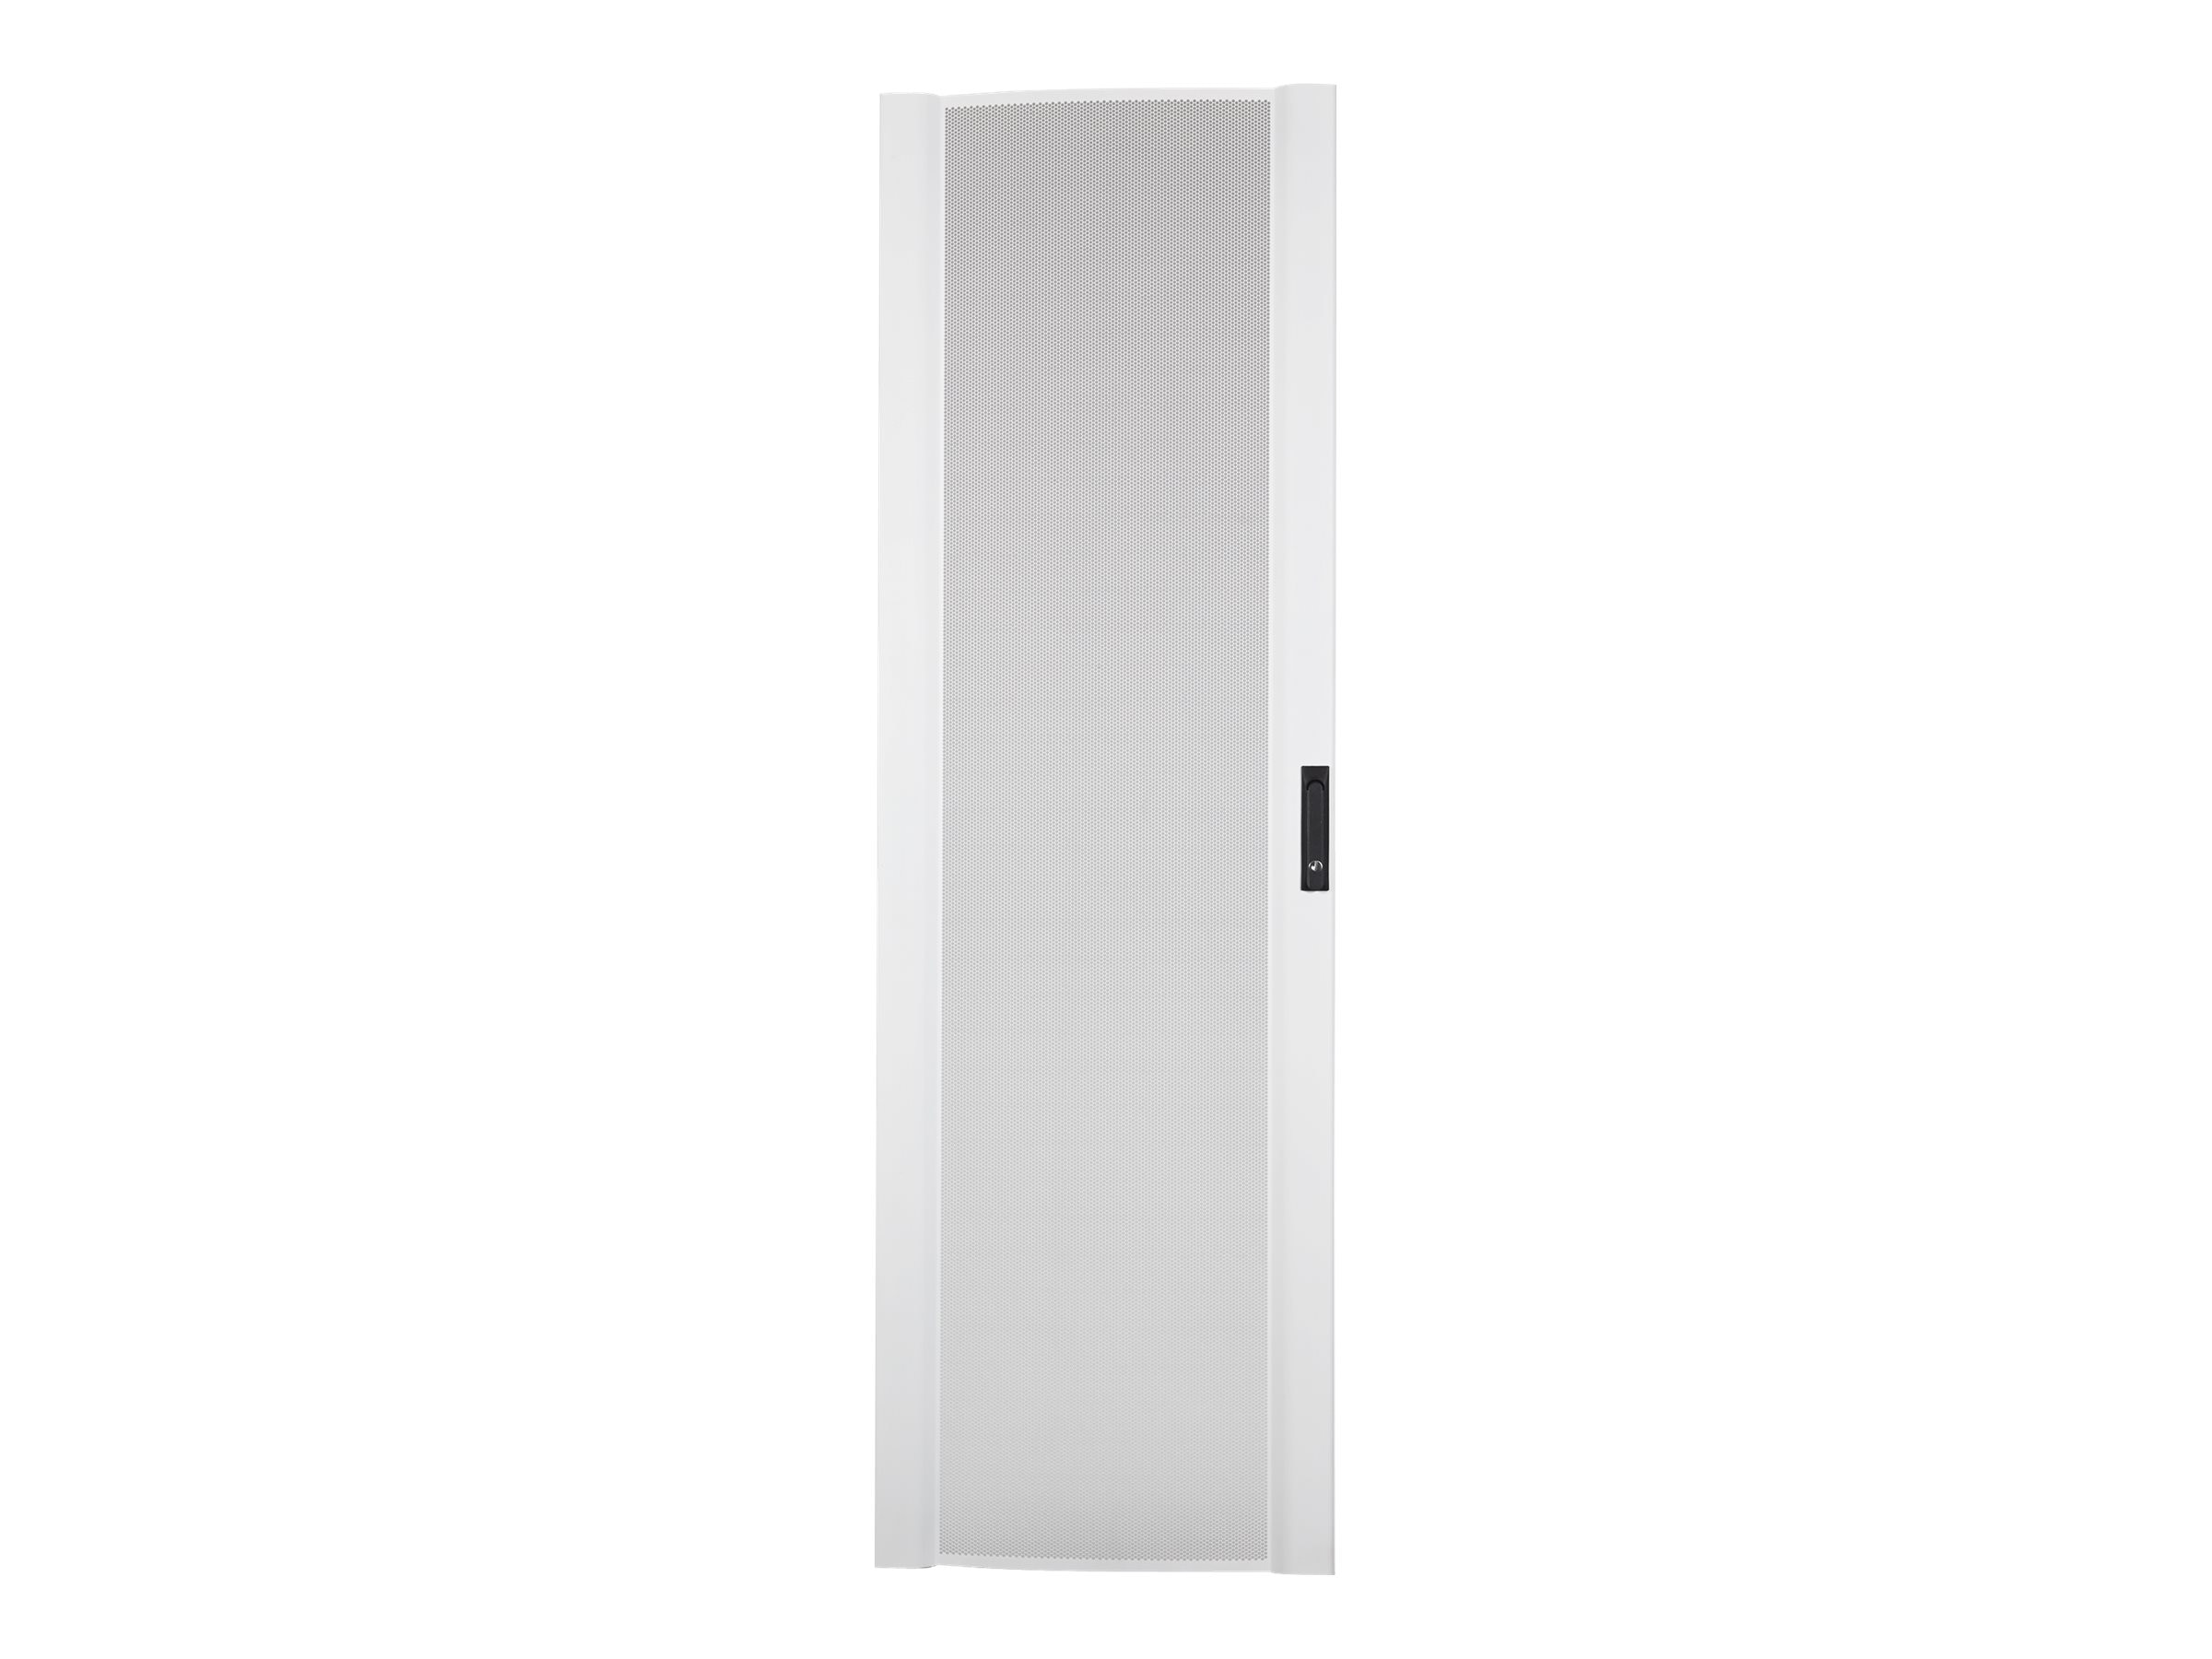 APC NetShelter SX 42U 600mm Wide Perforated Curved Door, White